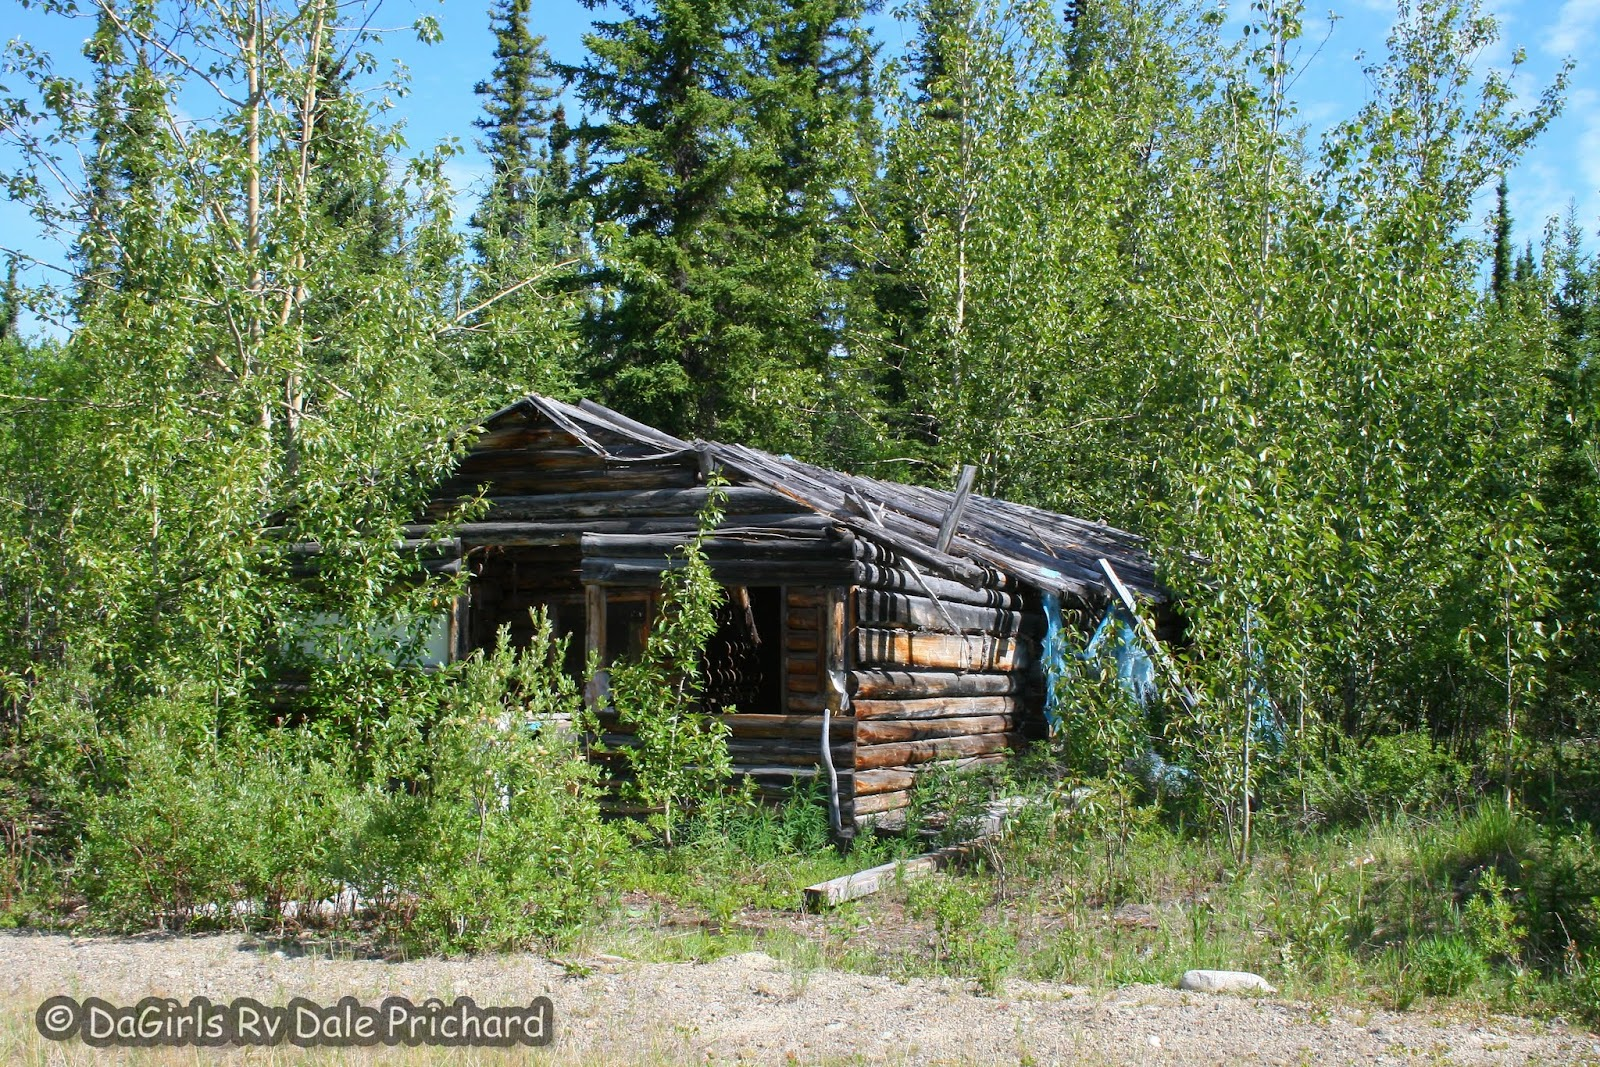 Dagirls travel map 2017 june 2015 - The recreational vehicle turned cabin in the woods ...